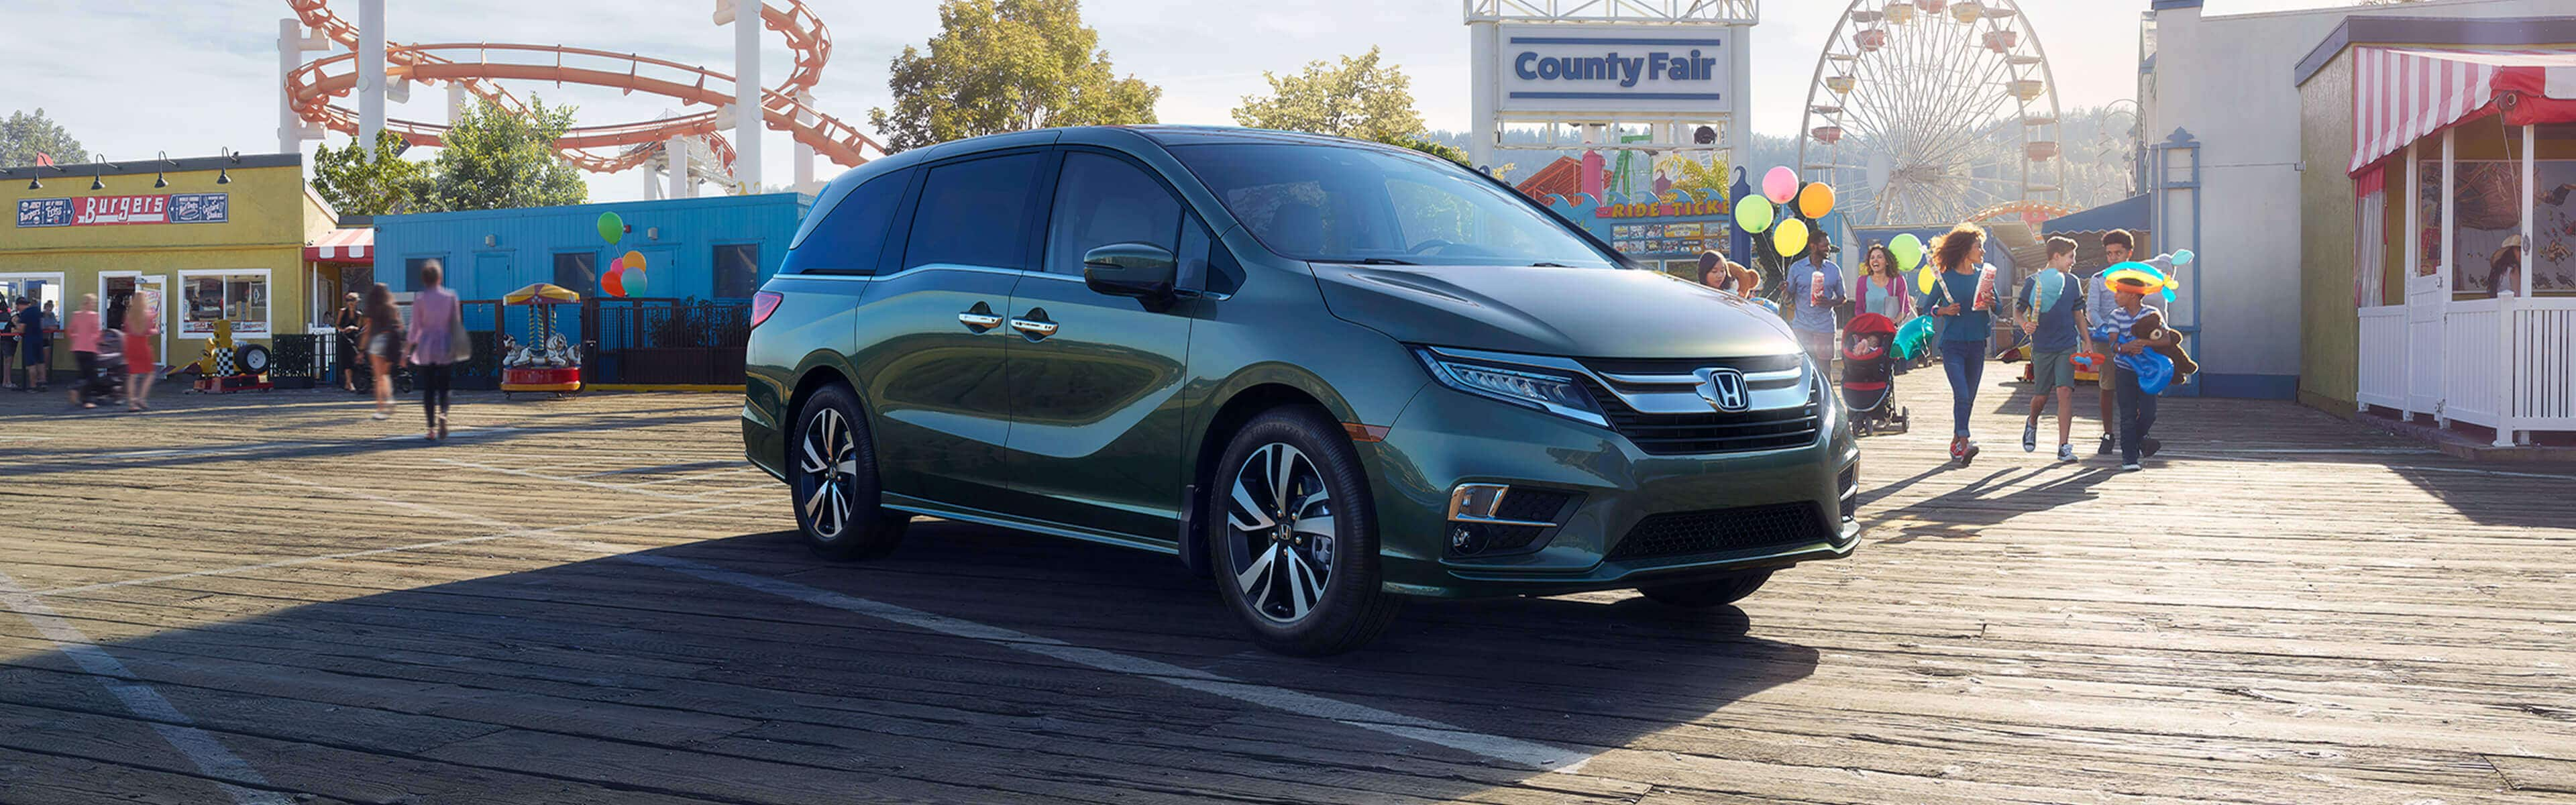 2019 Honda Odyssey 2003 Headlight Wiring Image Of The Forest Mist Metallic At An Amusement Park